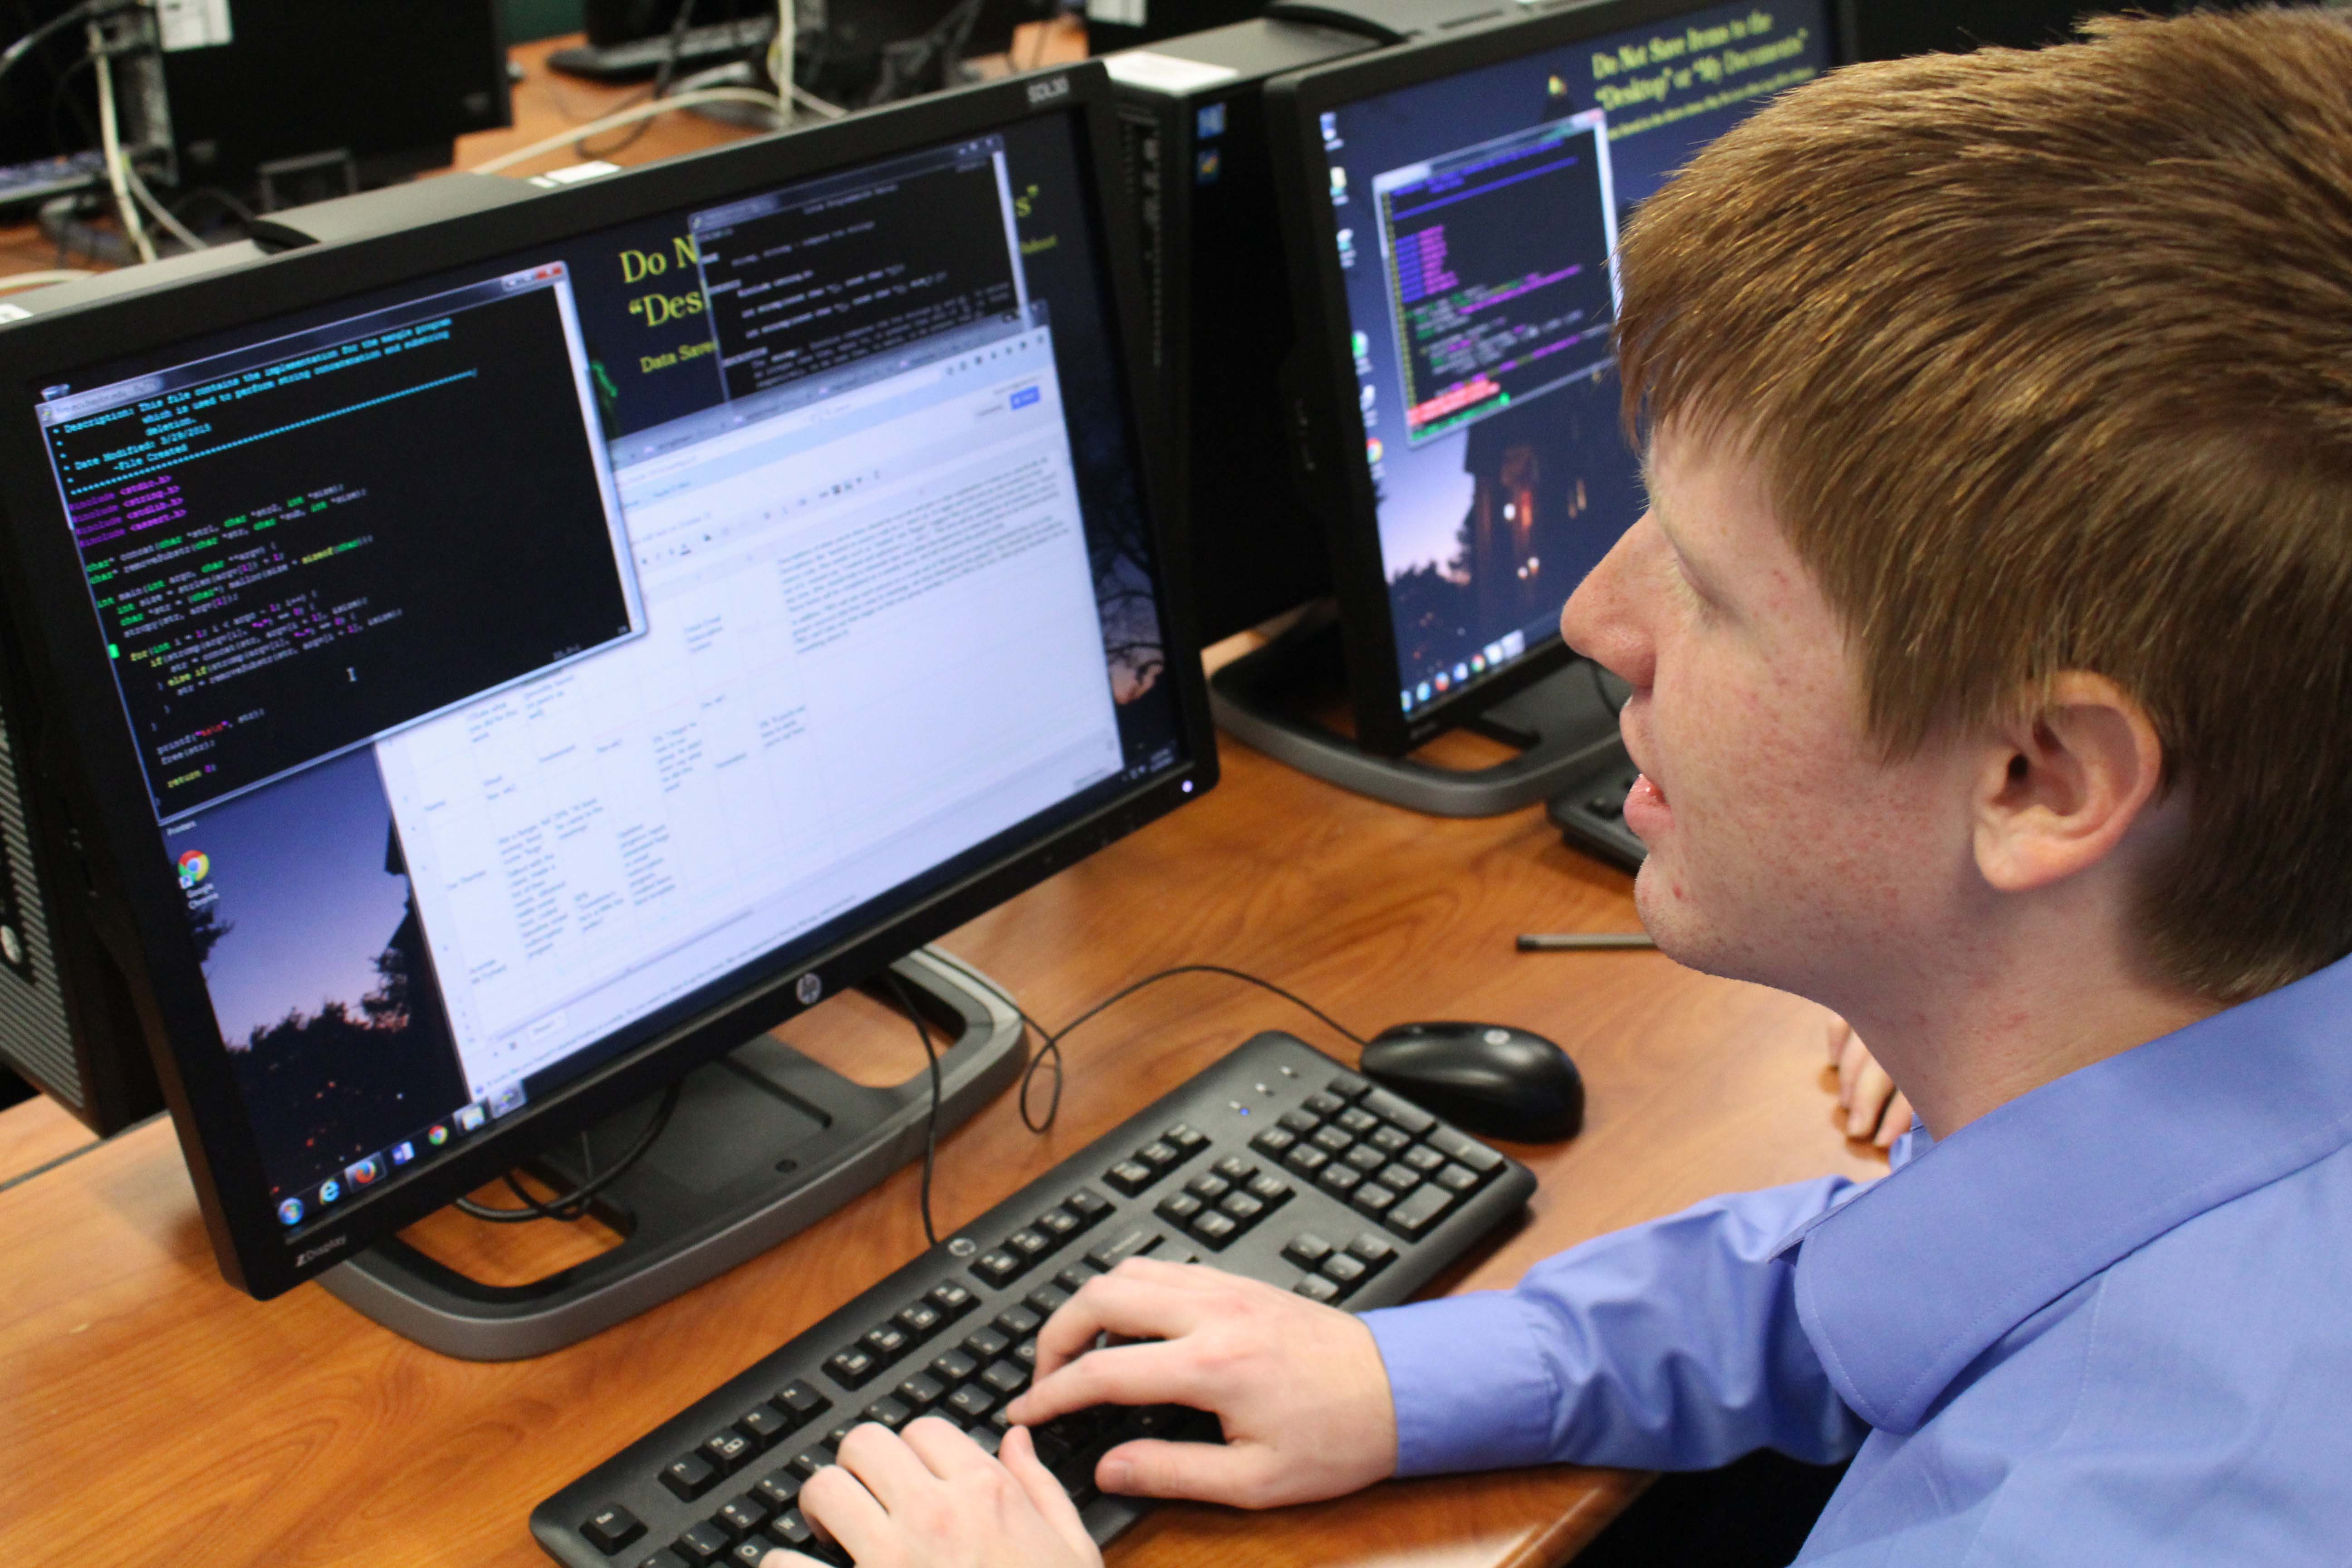 Giving Back Baylor Students Use Technology Skills To